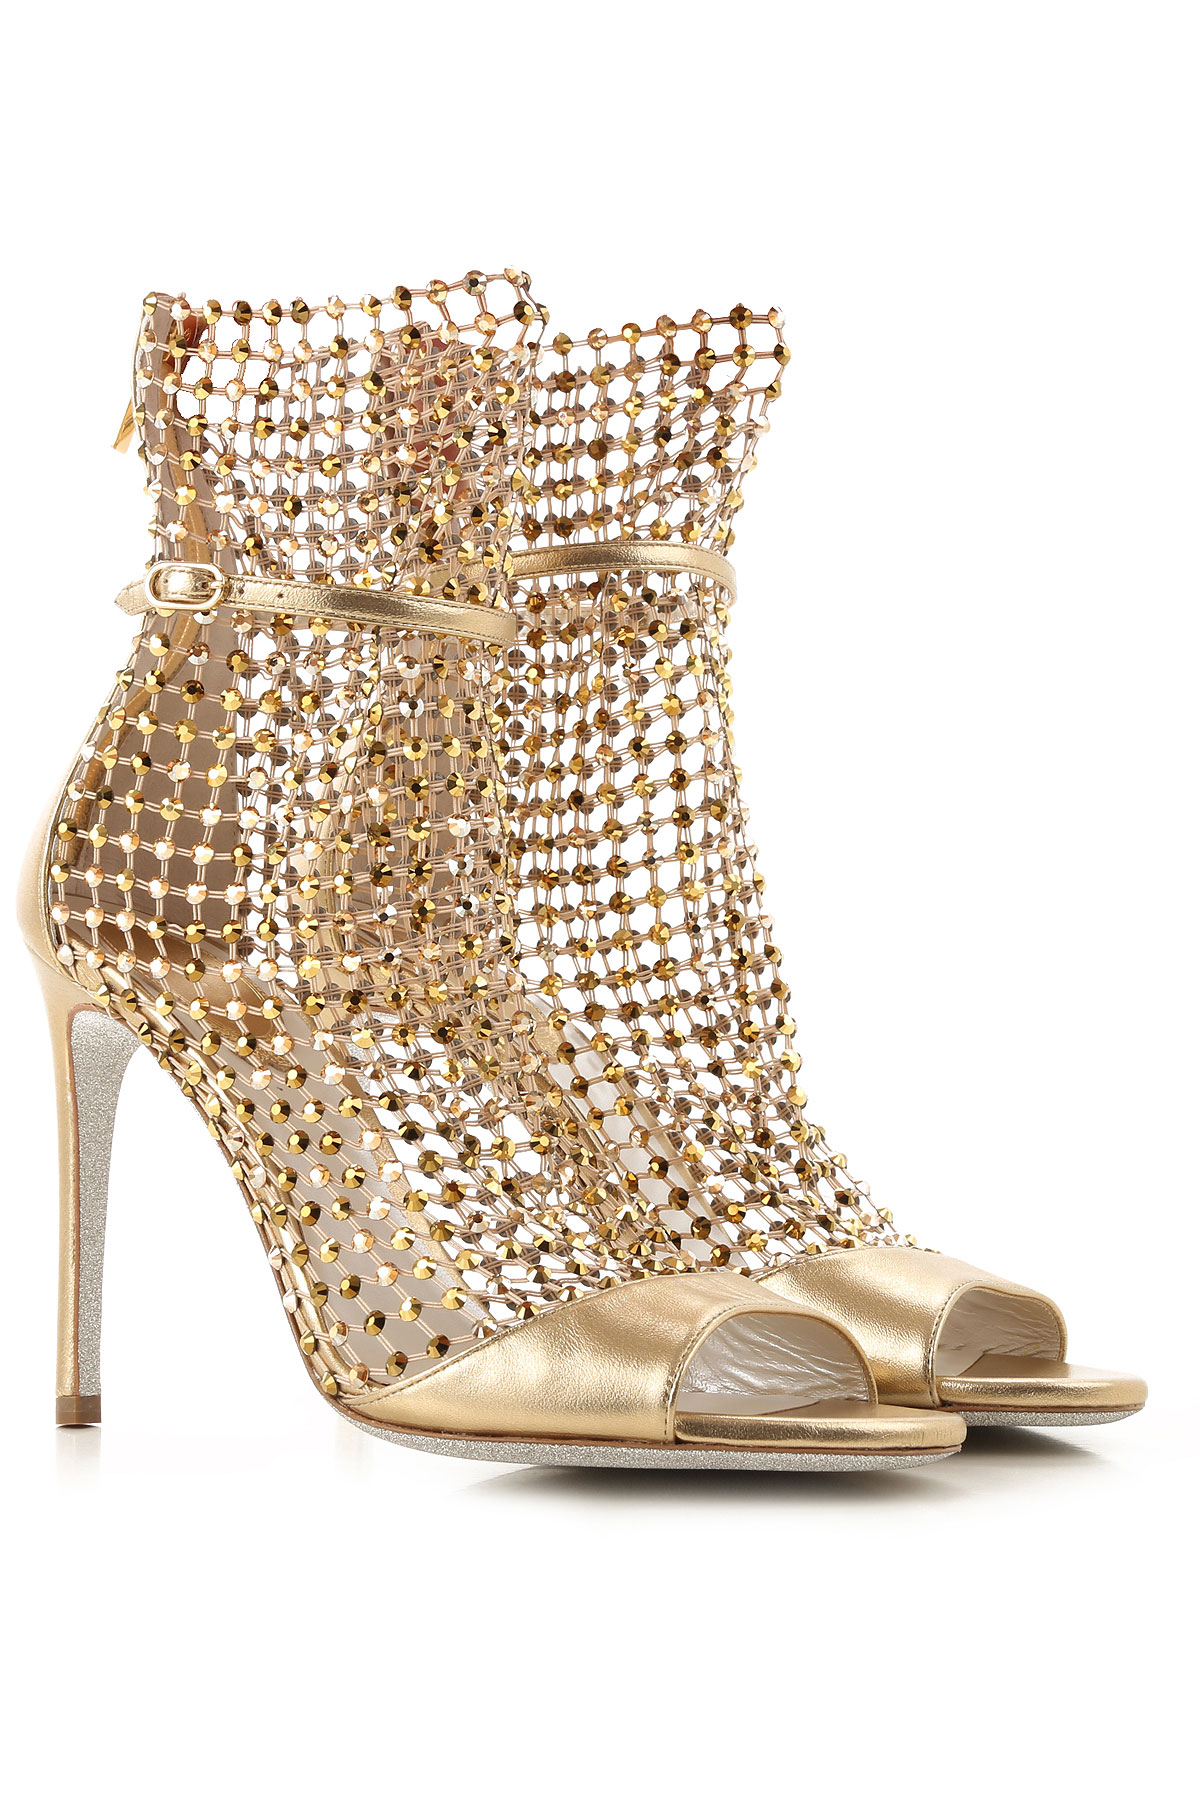 Rene Caovilla Sandals for Women On Sale, Gold, Leather, 2019, 6.5 7 8.5 9